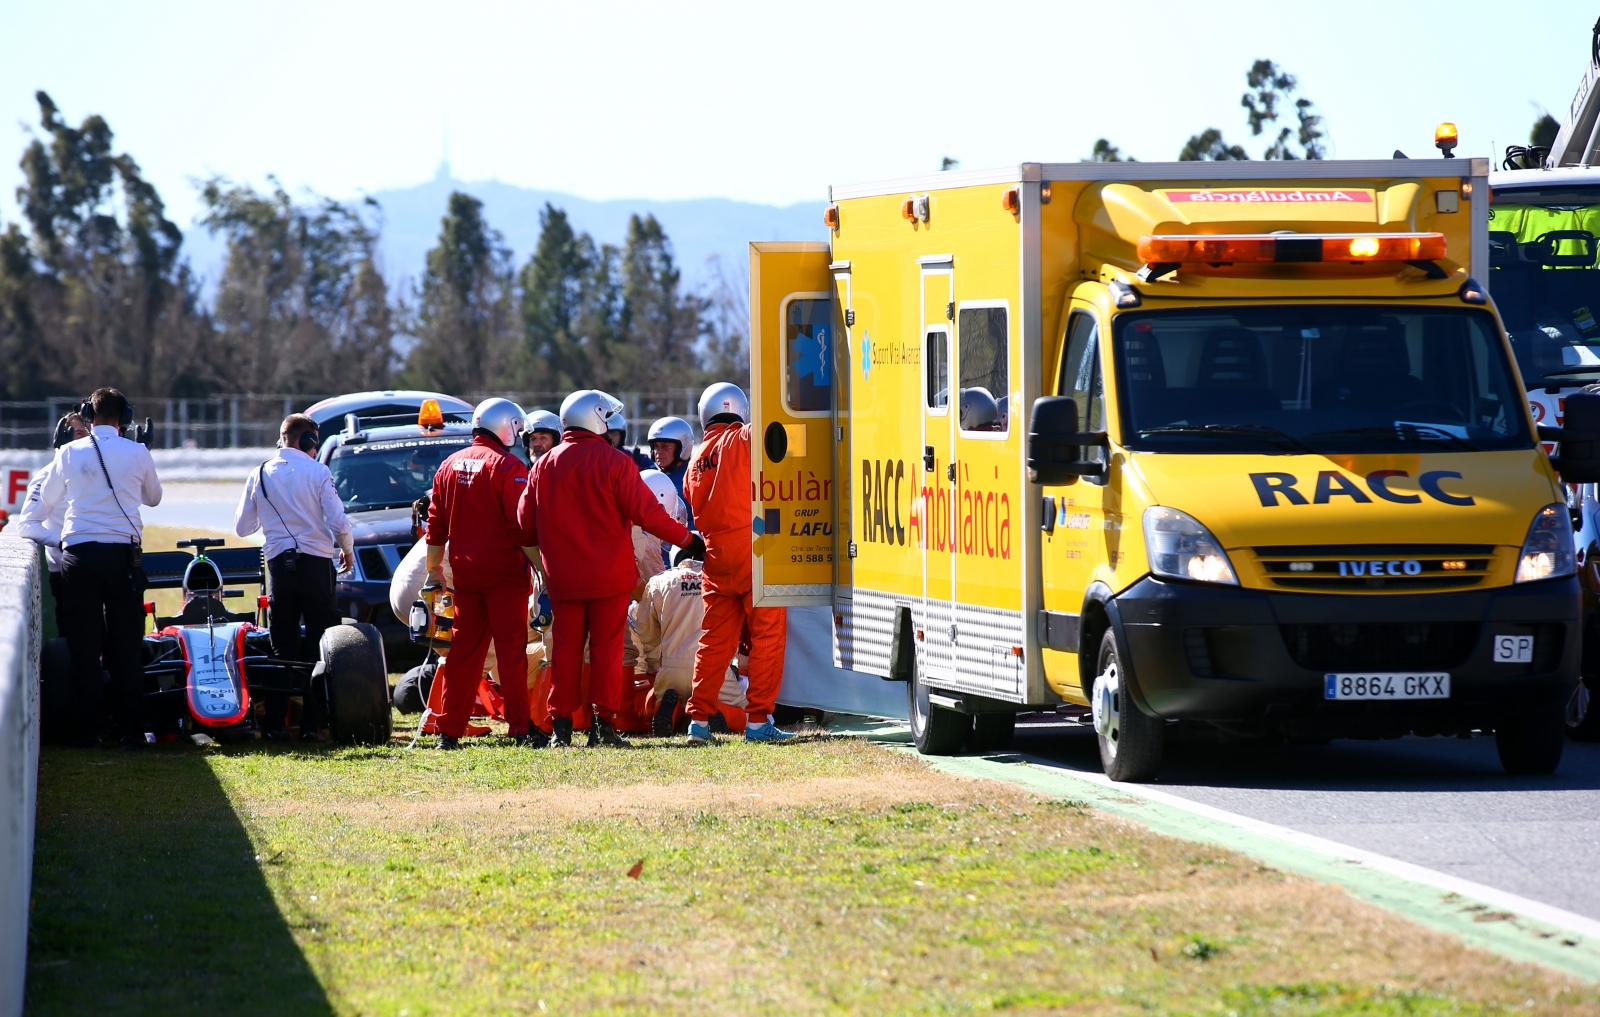 Fernando Alonso airlifted to hospital after crash during testing in Barcelona